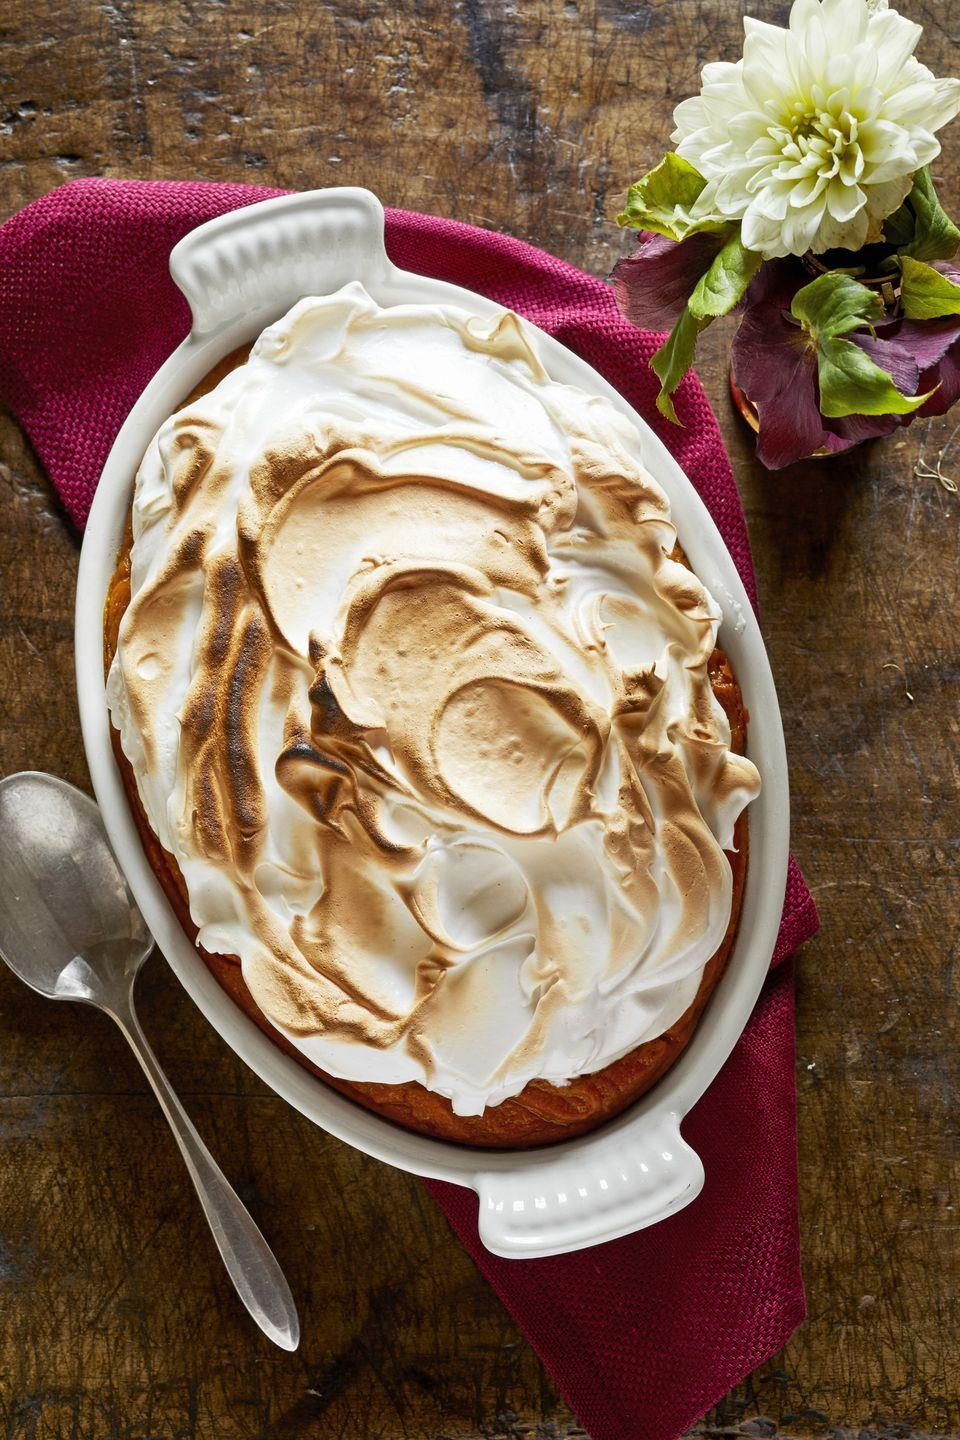 """<p>Although this dish screams Thanksgiving, you'll have no trouble serving it any time of the year. It's so delicious, we doubt your family will complain.</p><p><strong><a href=""""https://www.countryliving.com/food-drinks/a29133187/sweet-potato-casserole-with-homemade-marshmallow/"""" rel=""""nofollow noopener"""" target=""""_blank"""" data-ylk=""""slk:Get the recipe"""" class=""""link rapid-noclick-resp"""">Get the recipe</a>.</strong></p><p><strong><a class=""""link rapid-noclick-resp"""" href=""""https://go.redirectingat.com?id=74968X1596630&url=https%3A%2F%2Fwww.surlatable.com%2Fstaub-ceramic-oval-baking-dish%2FPRO-1908573.html&sref=https%3A%2F%2Fwww.countryliving.com%2Ffood-drinks%2Fg877%2Fsweet-potato-recipes-1009%2F"""" rel=""""nofollow noopener"""" target=""""_blank"""" data-ylk=""""slk:SHOP BAKING DISHES"""">SHOP BAKING DISHES</a><br></strong></p>"""